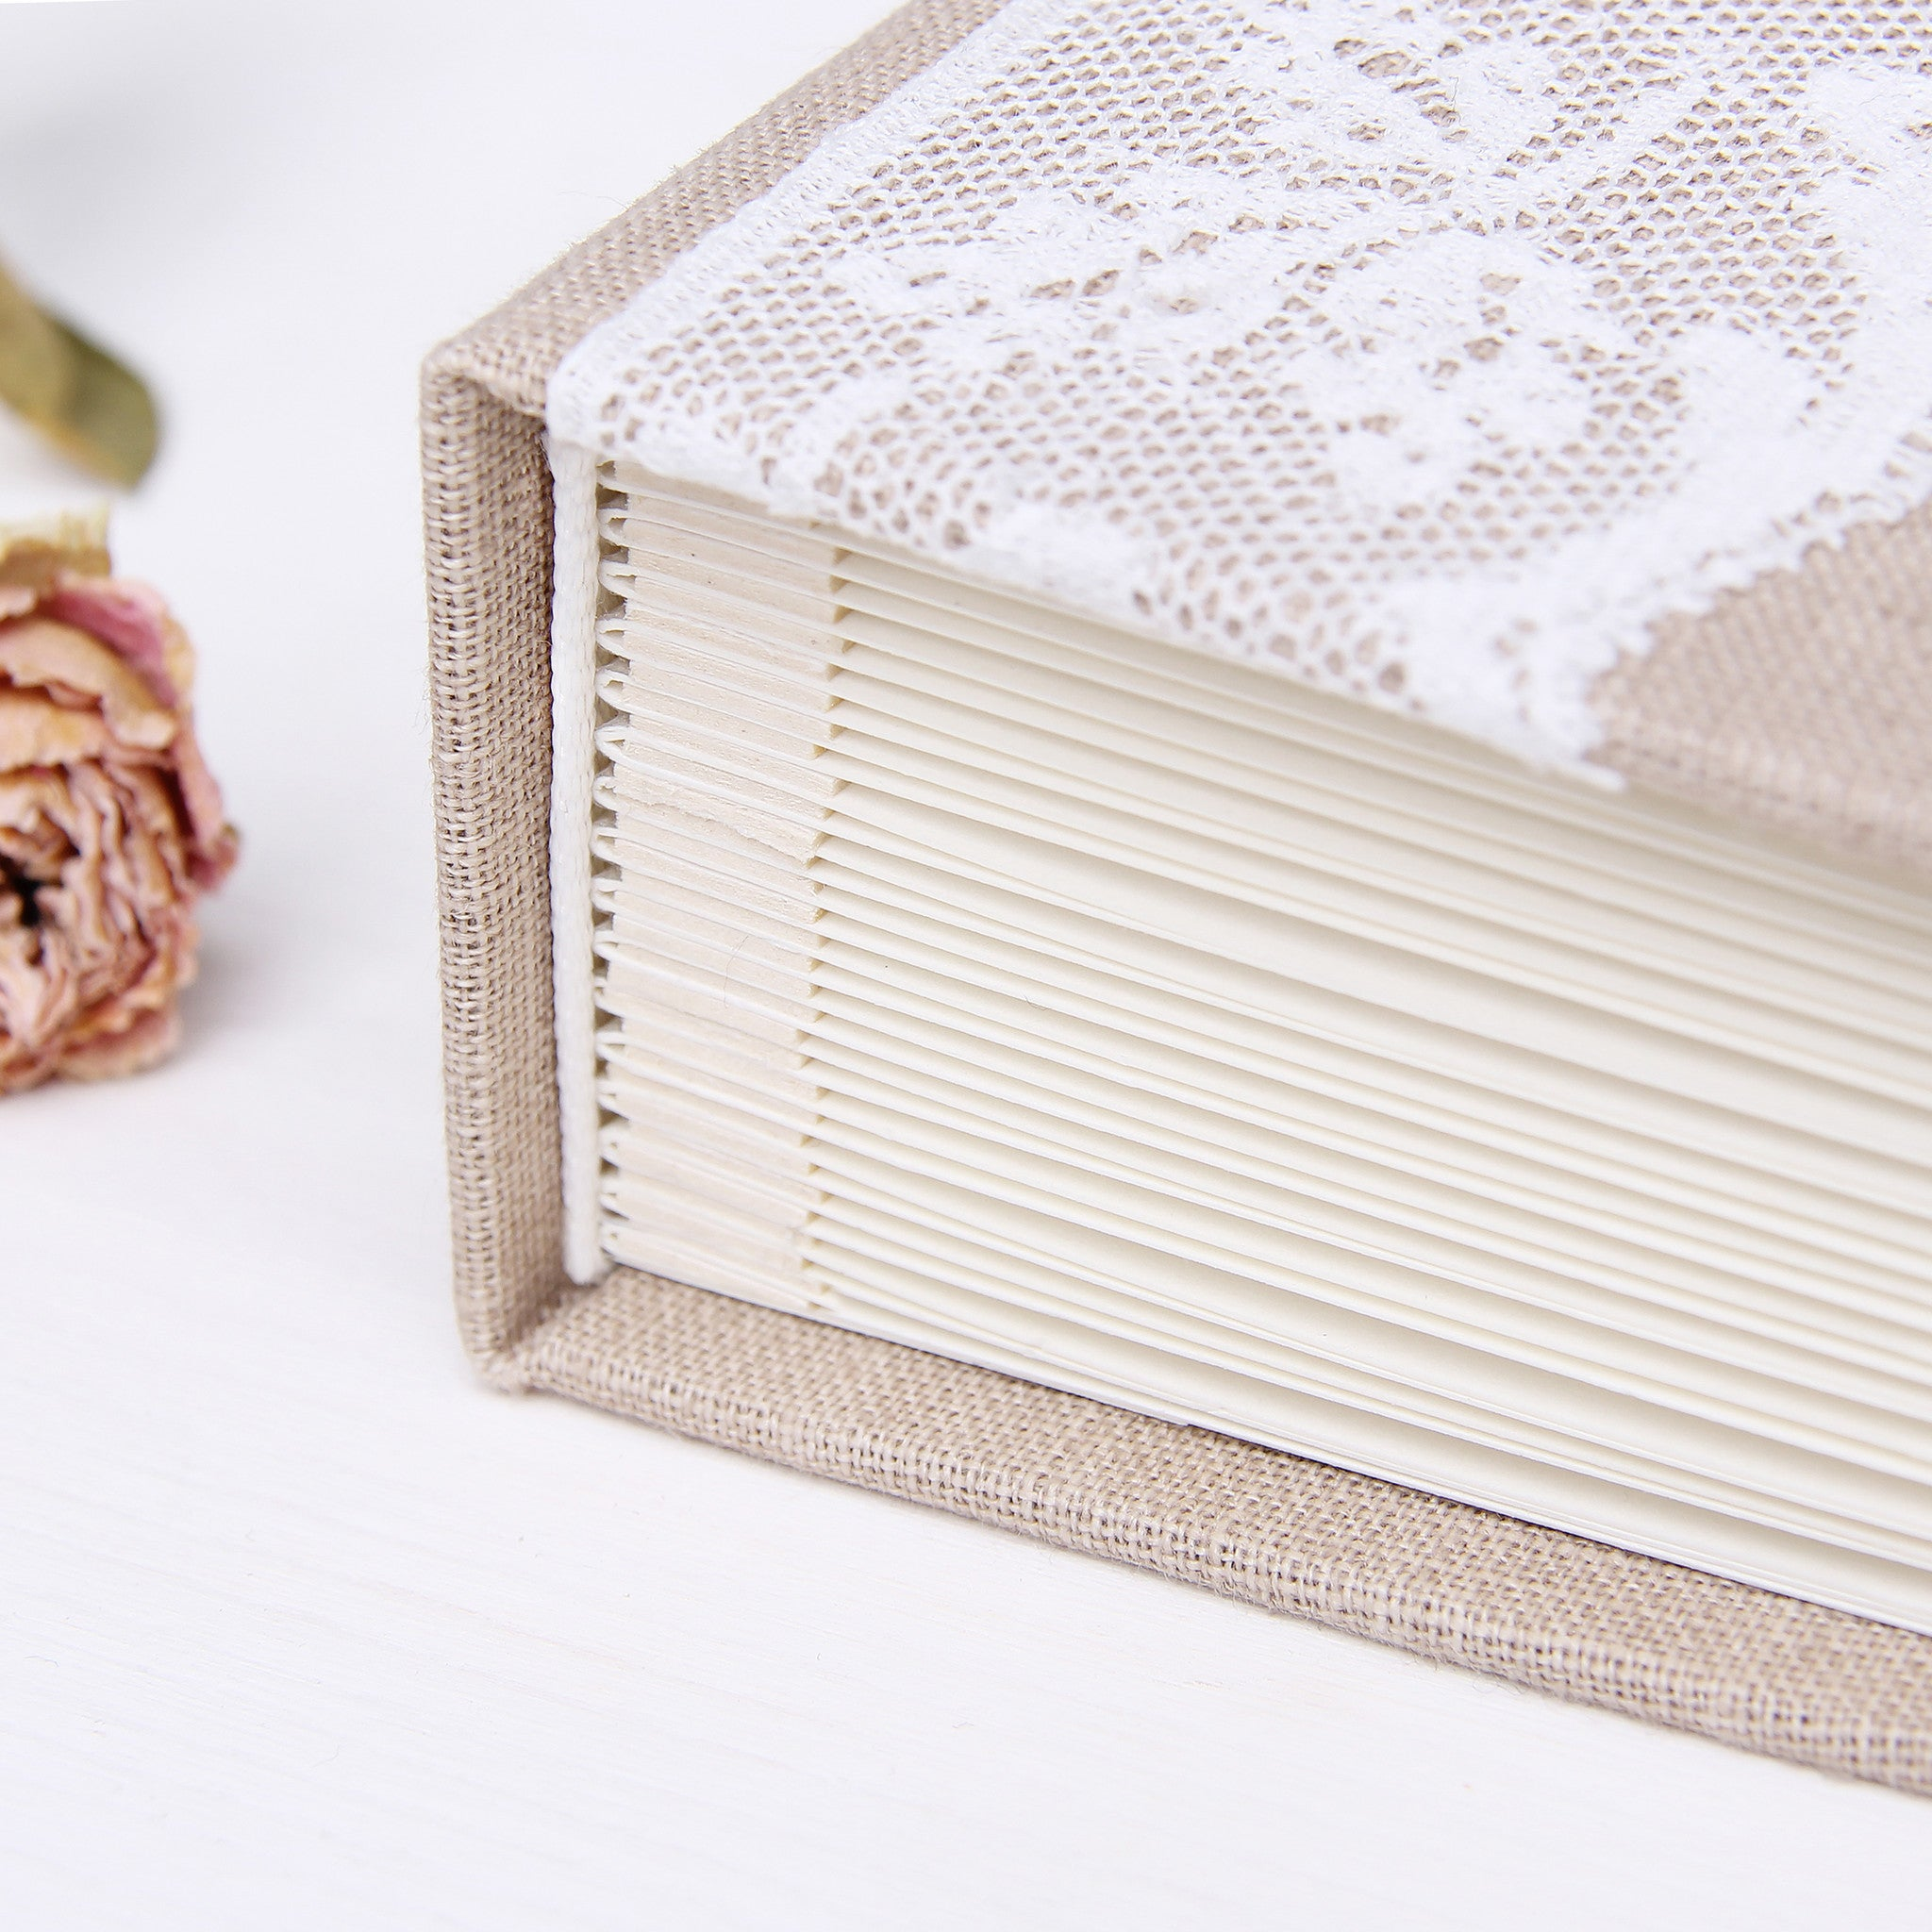 Instant Wedding Guest Book Album Instax Rustic with Light Lace - Liumy